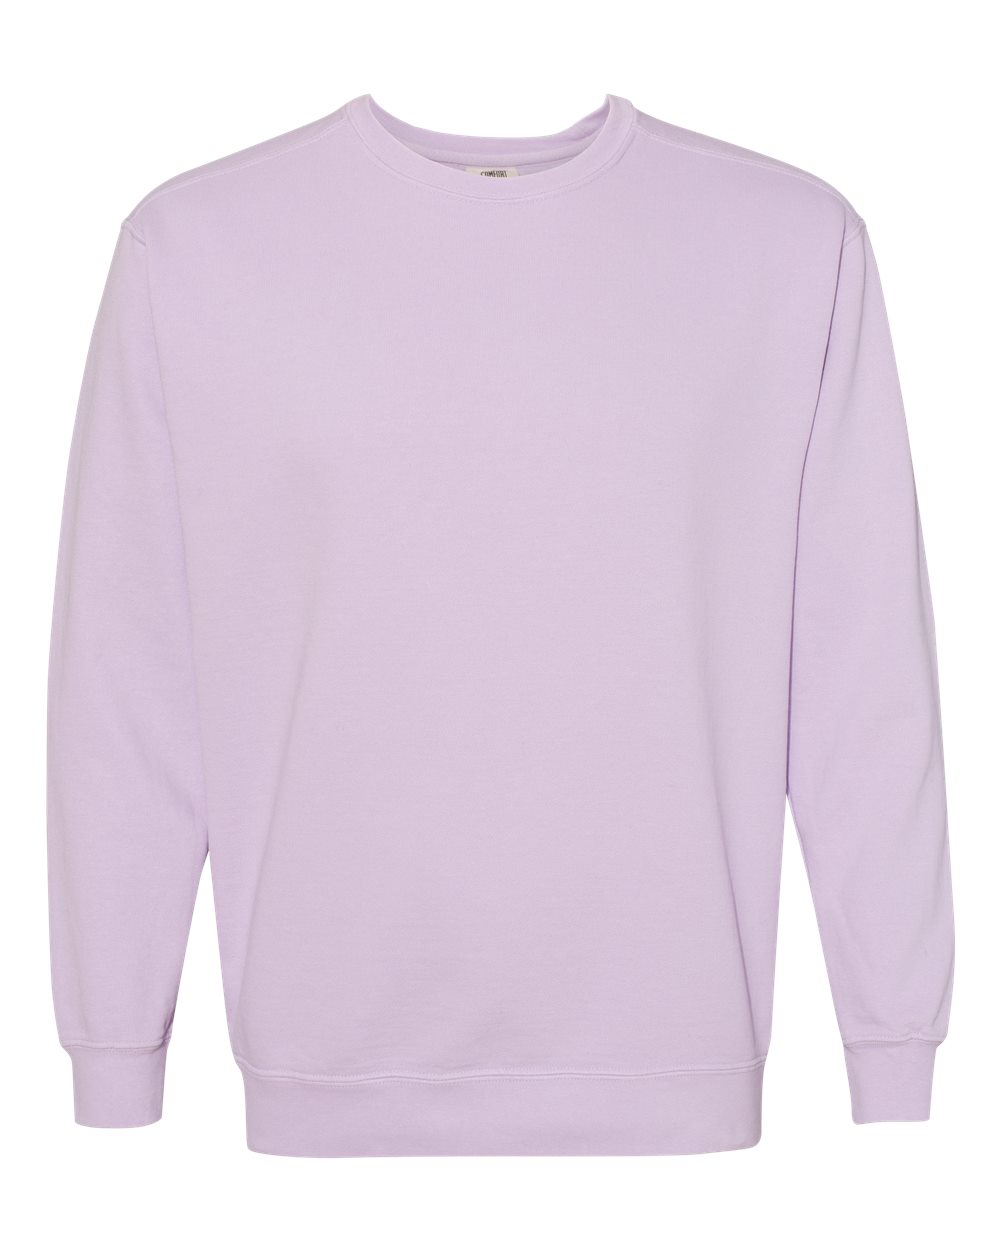 Comfort-Colors-Mens-Garment-Dyed-Ringspun-Crewneck-Sweatshirt-1566-up-to-3XL miniature 45